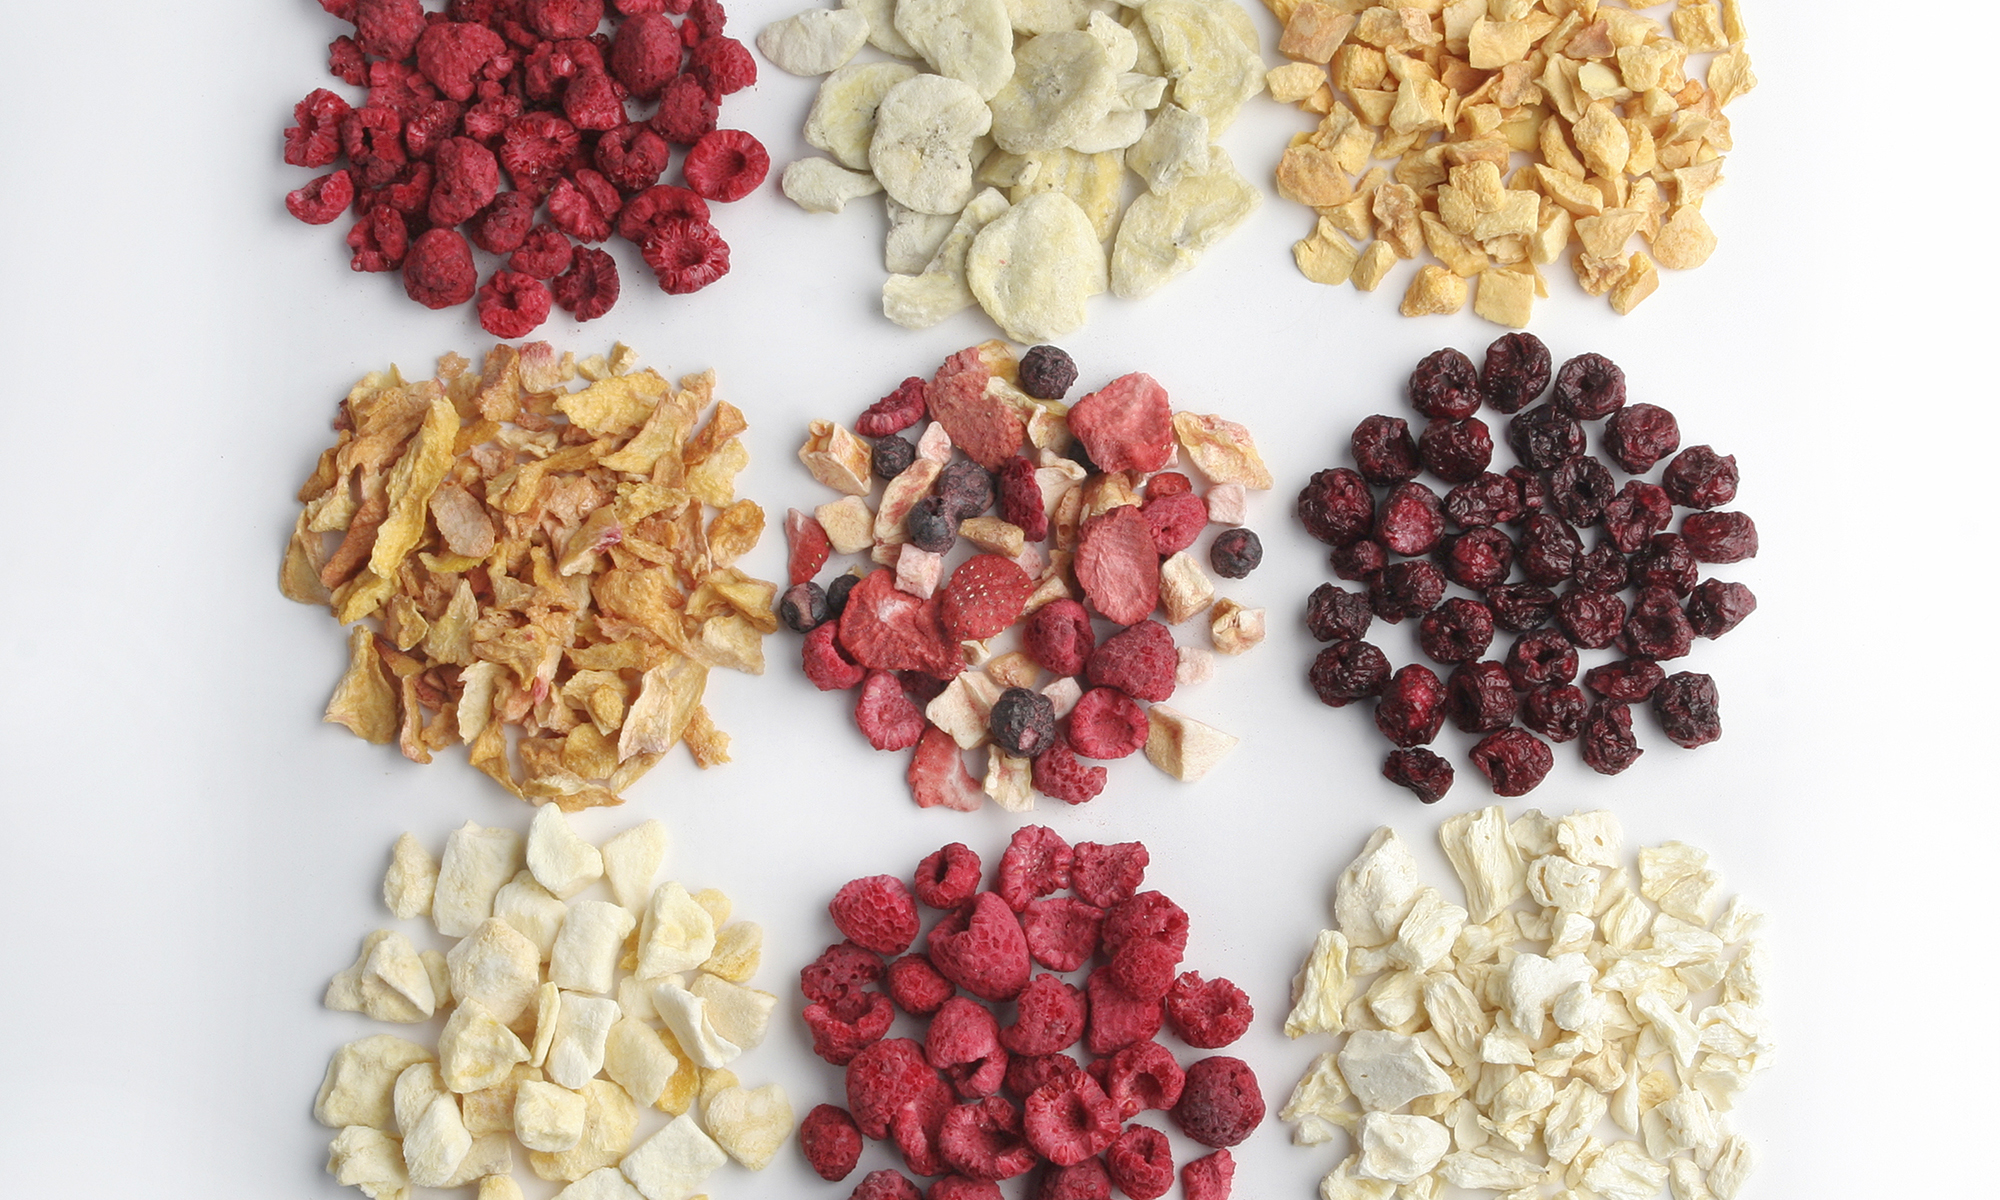 Why Freeze-Dry? - How Freeze-Drying Works | HowStuffWorks